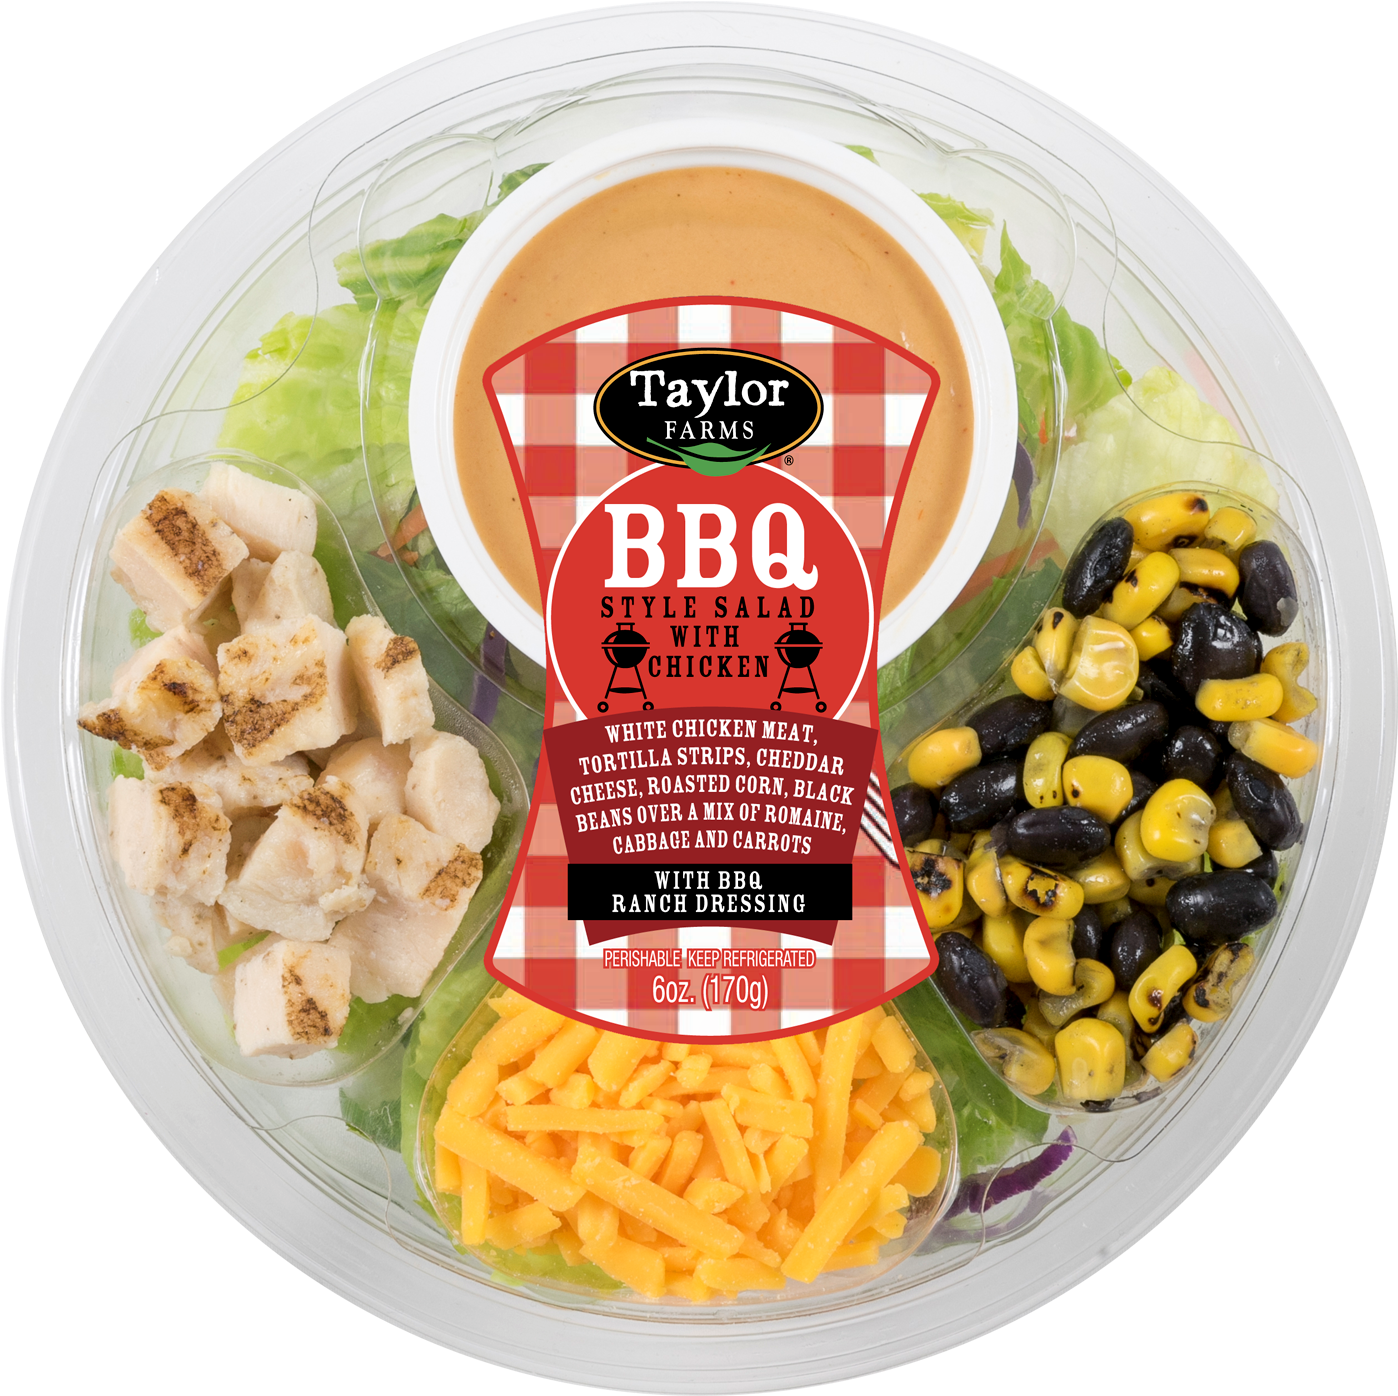 Taylor Farms Bbq Salad With Chicken Round Toss Up, (1492x1500), Png Download